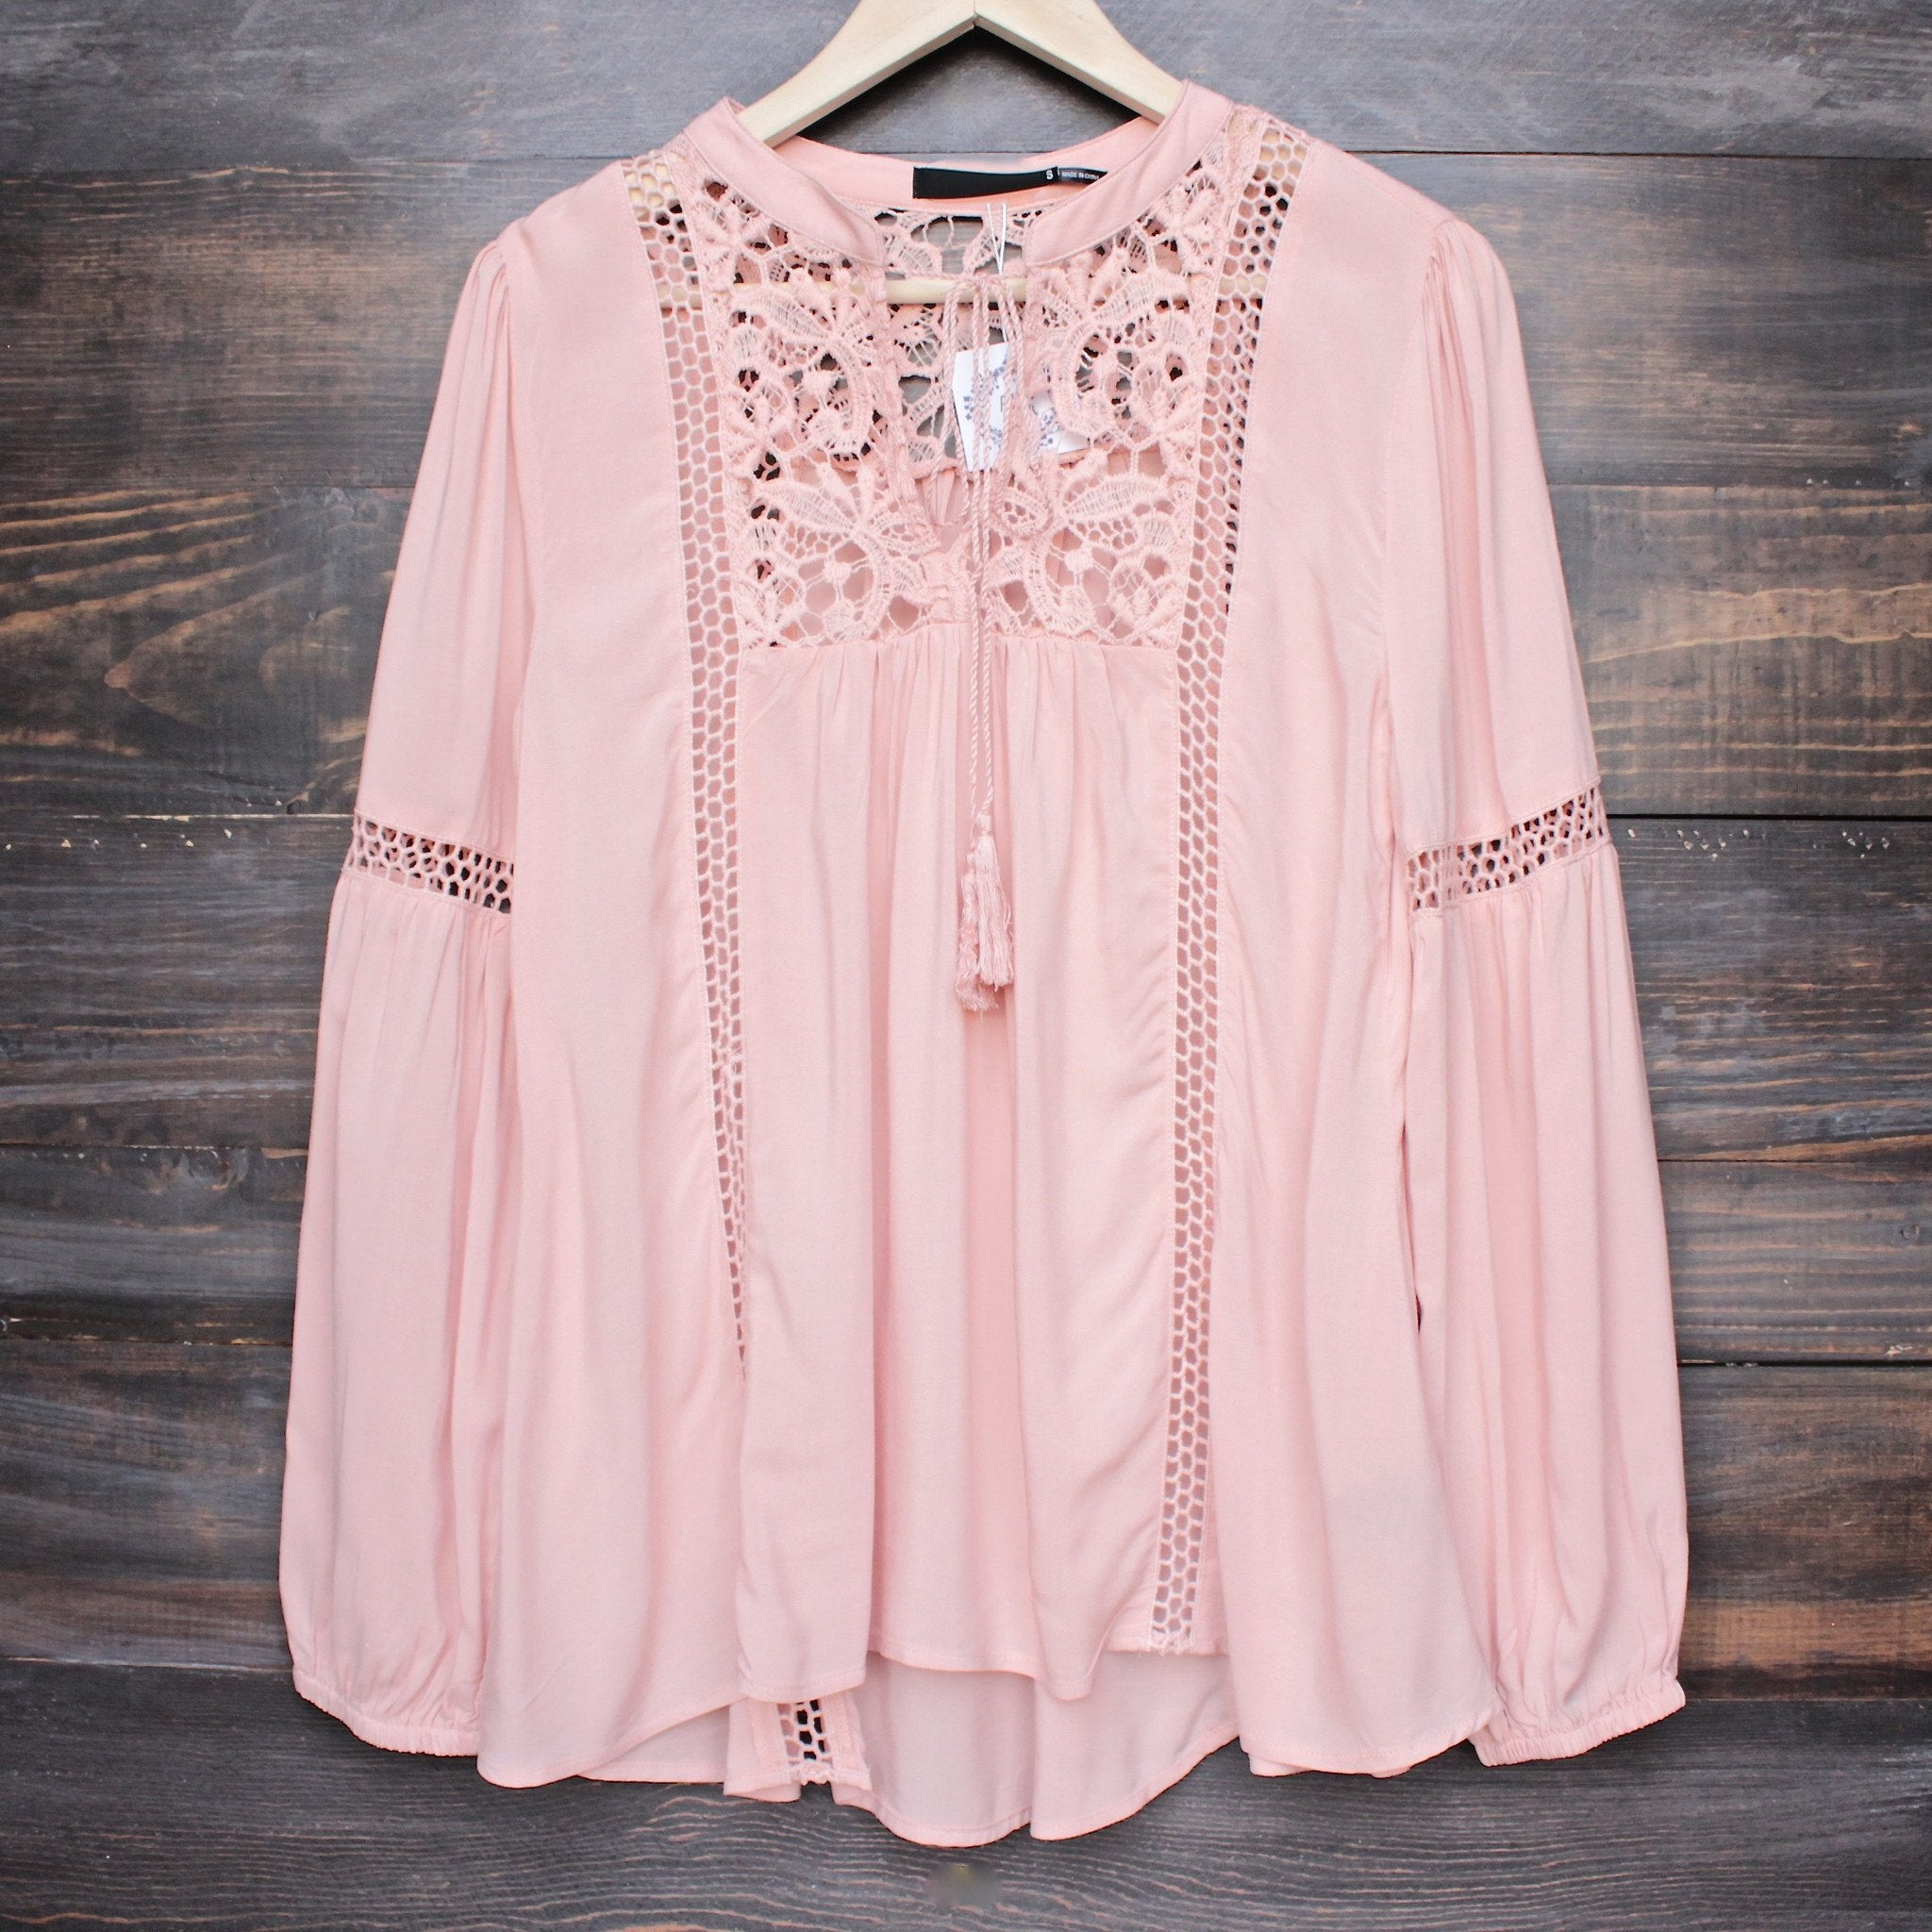 boho long sleeve peasant blouse with lace inset - dark salmon - shophearts - 1